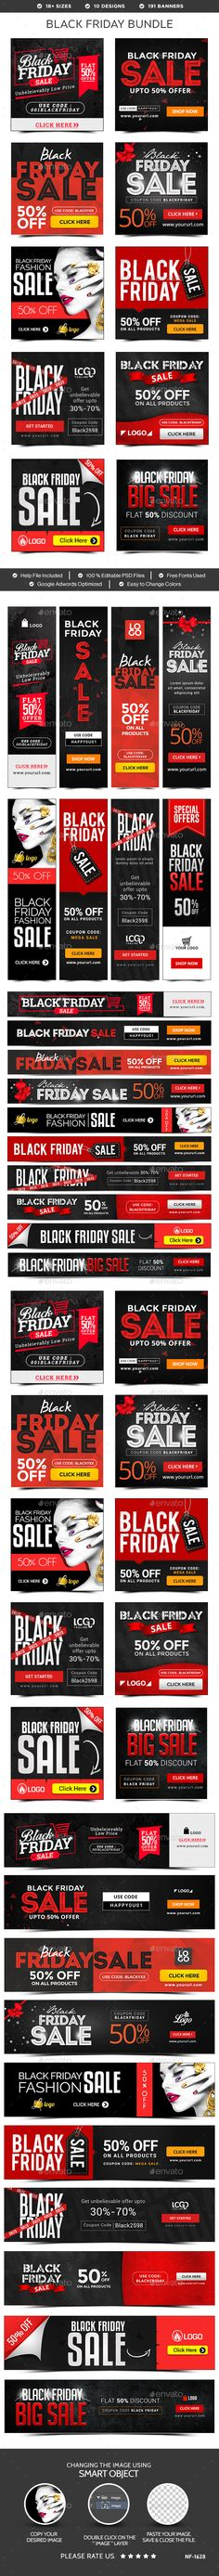 Black Friday Banners Design Template Bundle - 10 Sets - 191 Banners - Banners & Ads Web Elements Ads banner Design Template PSD. Download here: https://graphicriver.net/item/black-friday-banners-bundle-10-sets-191-banners/18901186?ref=yinkira